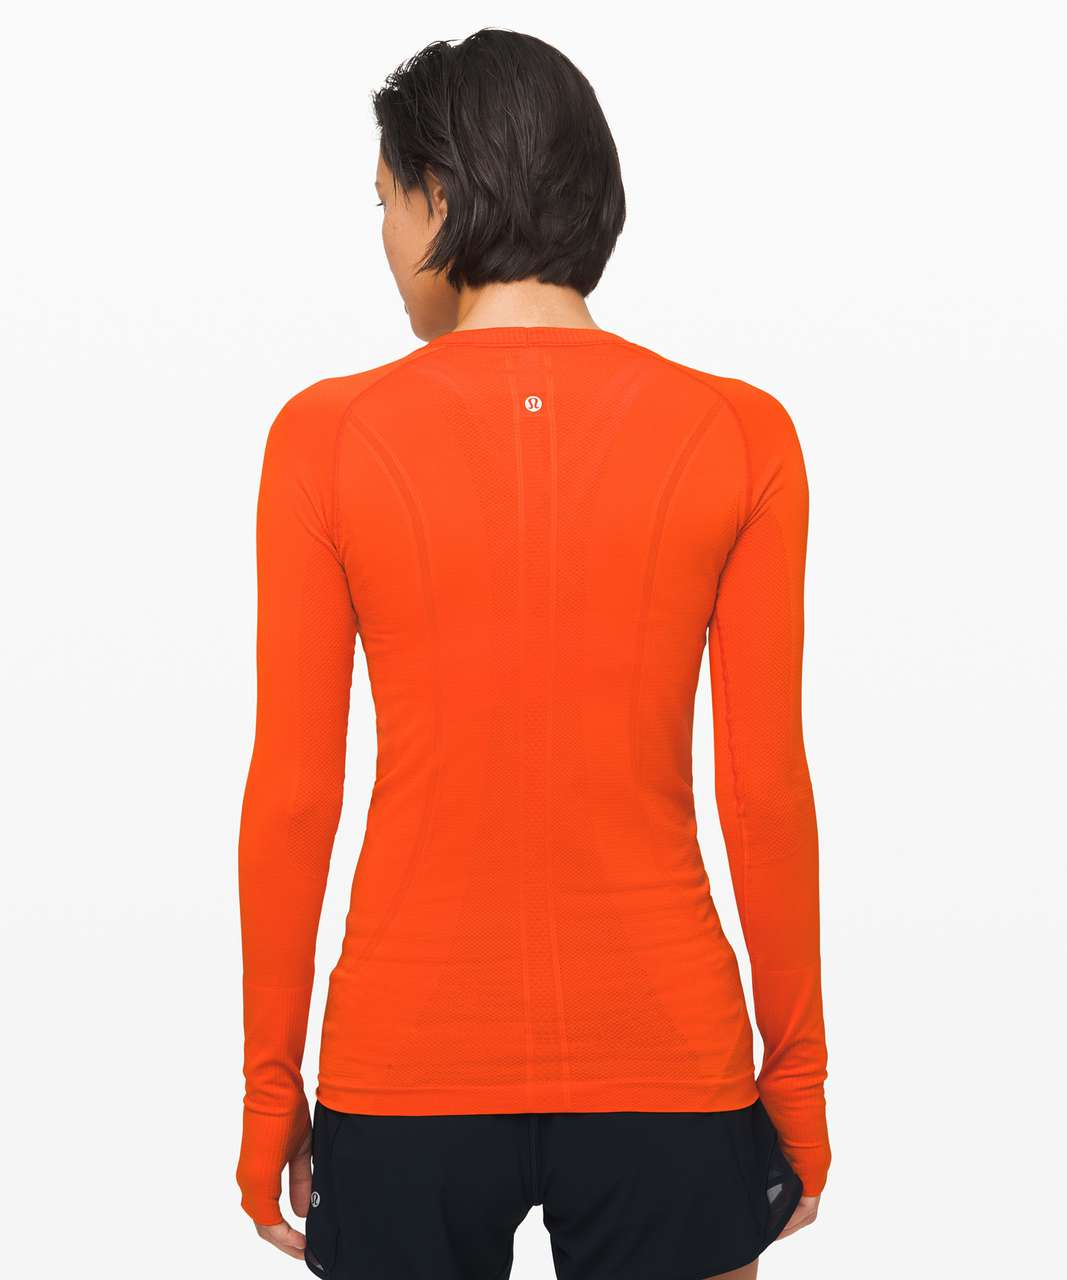 Lululemon Swiftly Tech Long Sleeve Crew - Expedition / Expedition